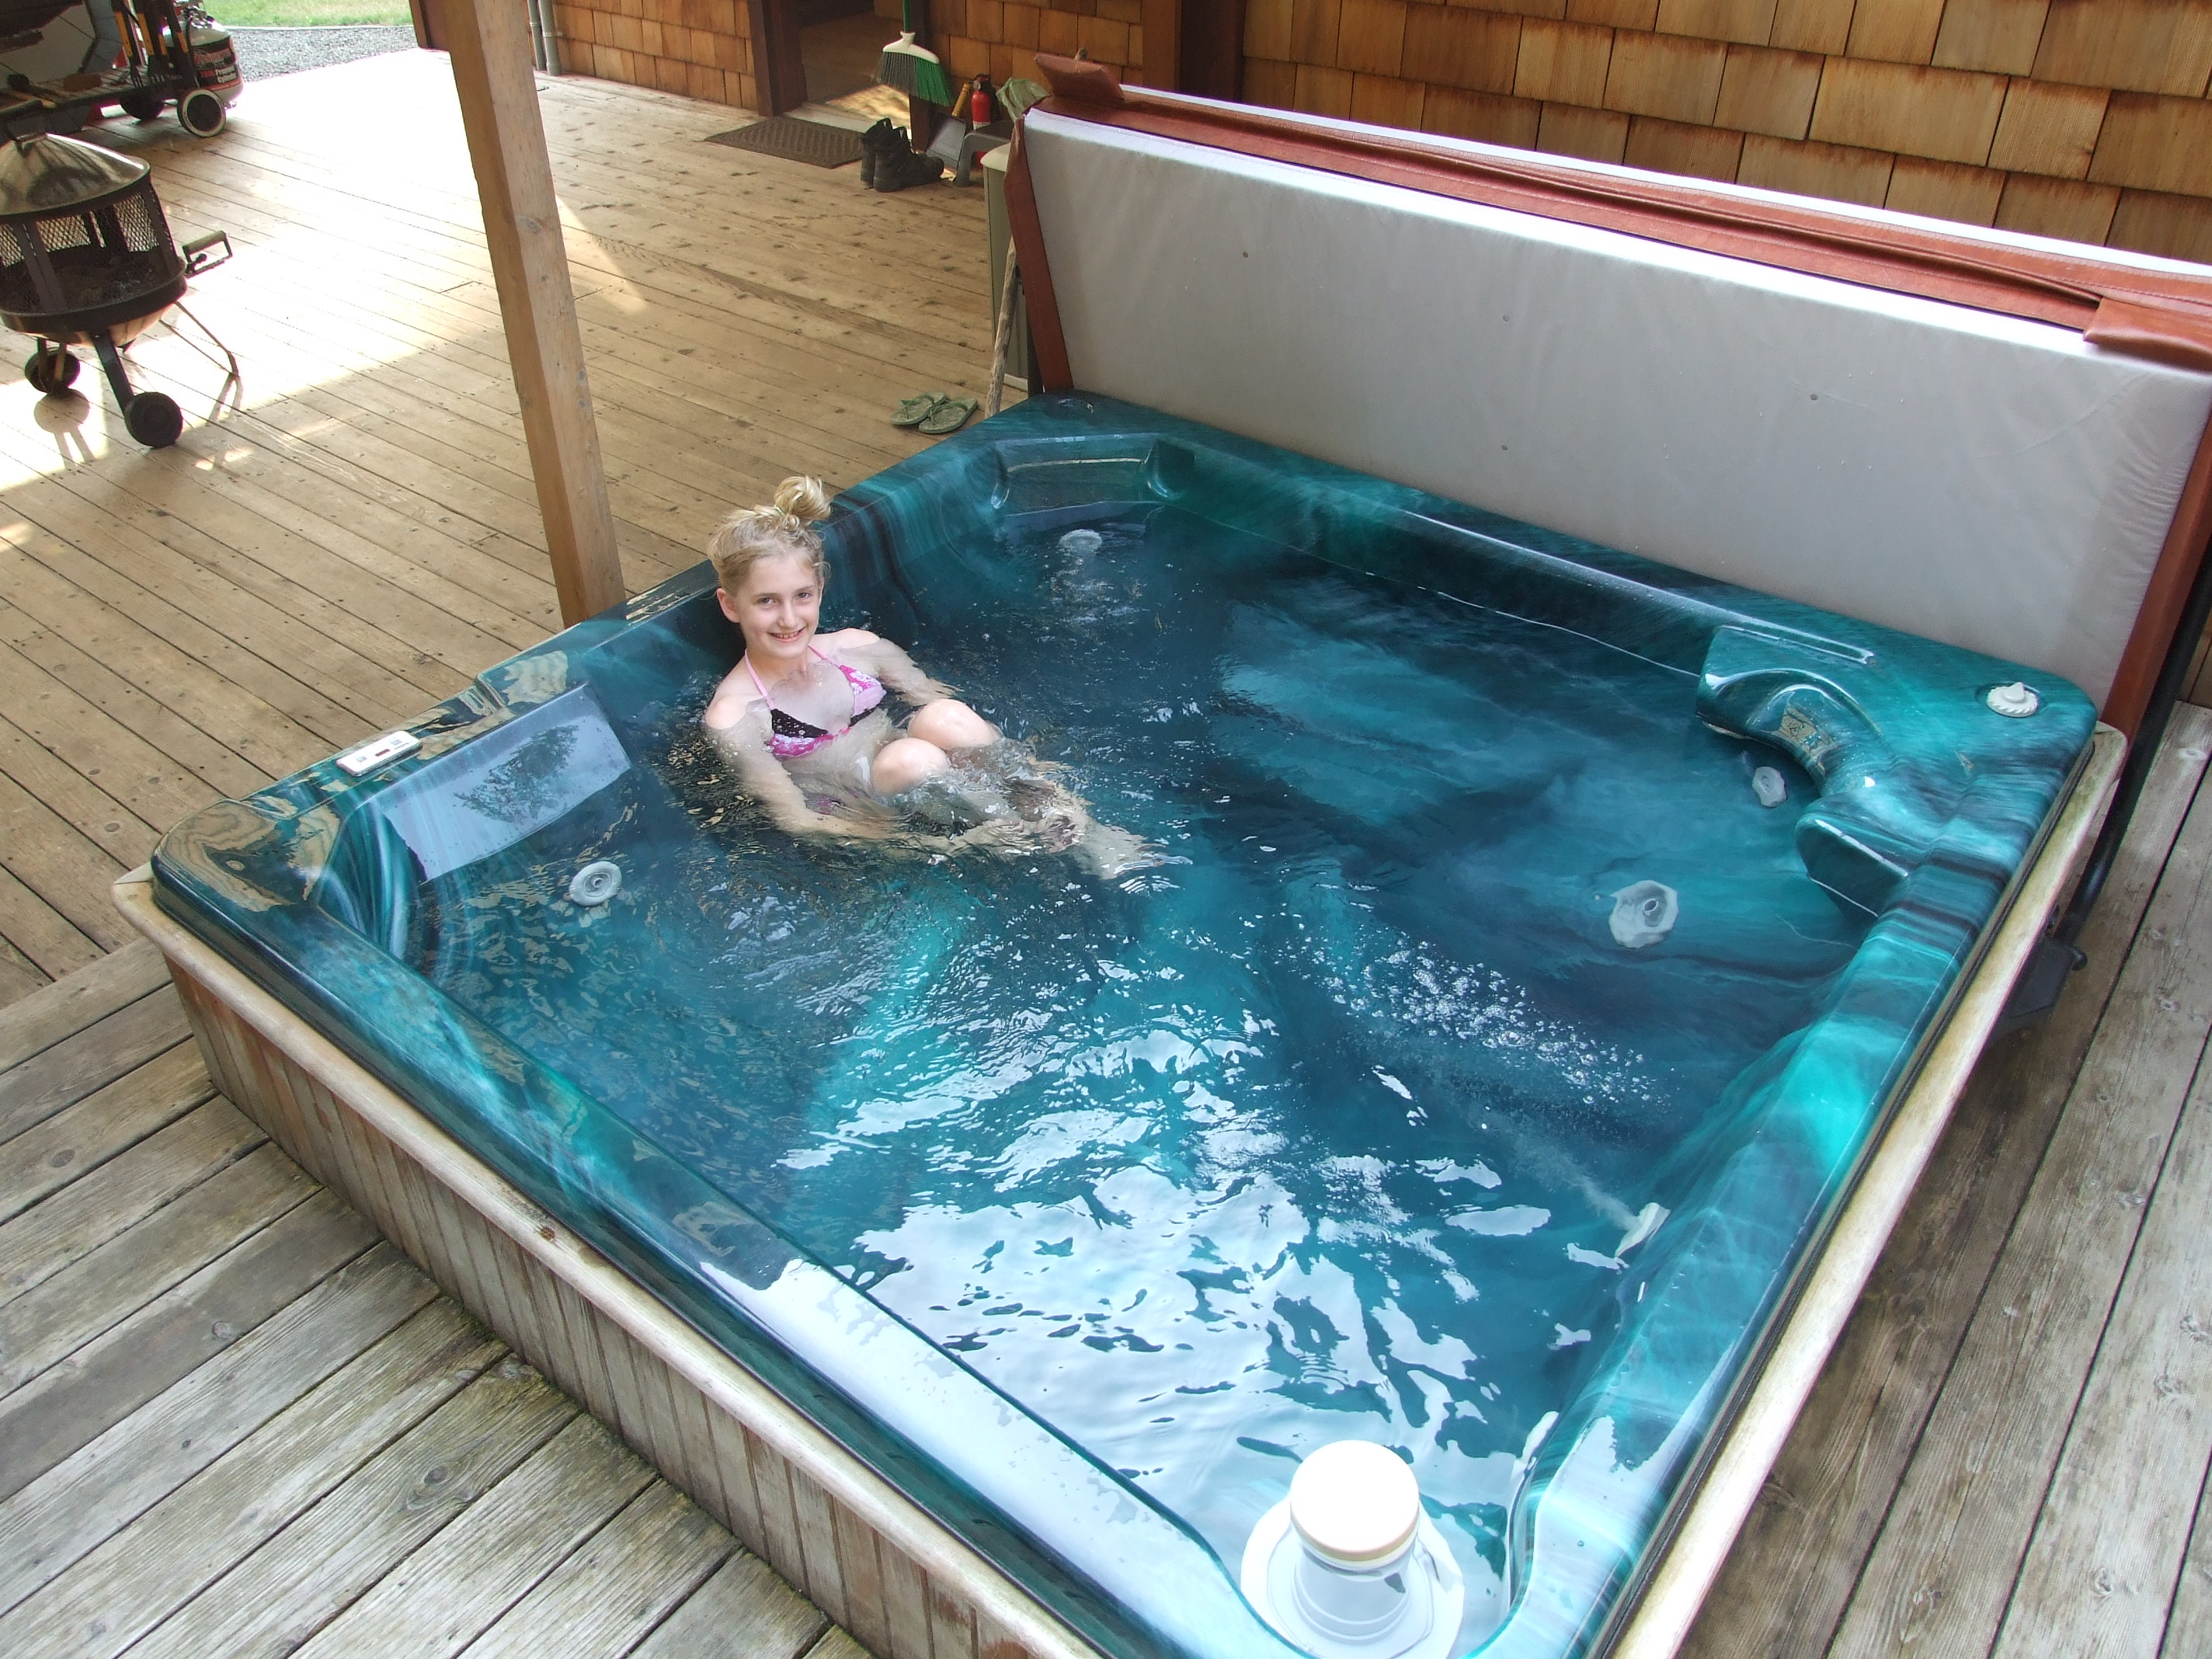 The Cedar Breeze hot tub at Sol Duc Riverside Cottages. There are other pictures of me in there with sunglasses on but I'll spare you those.